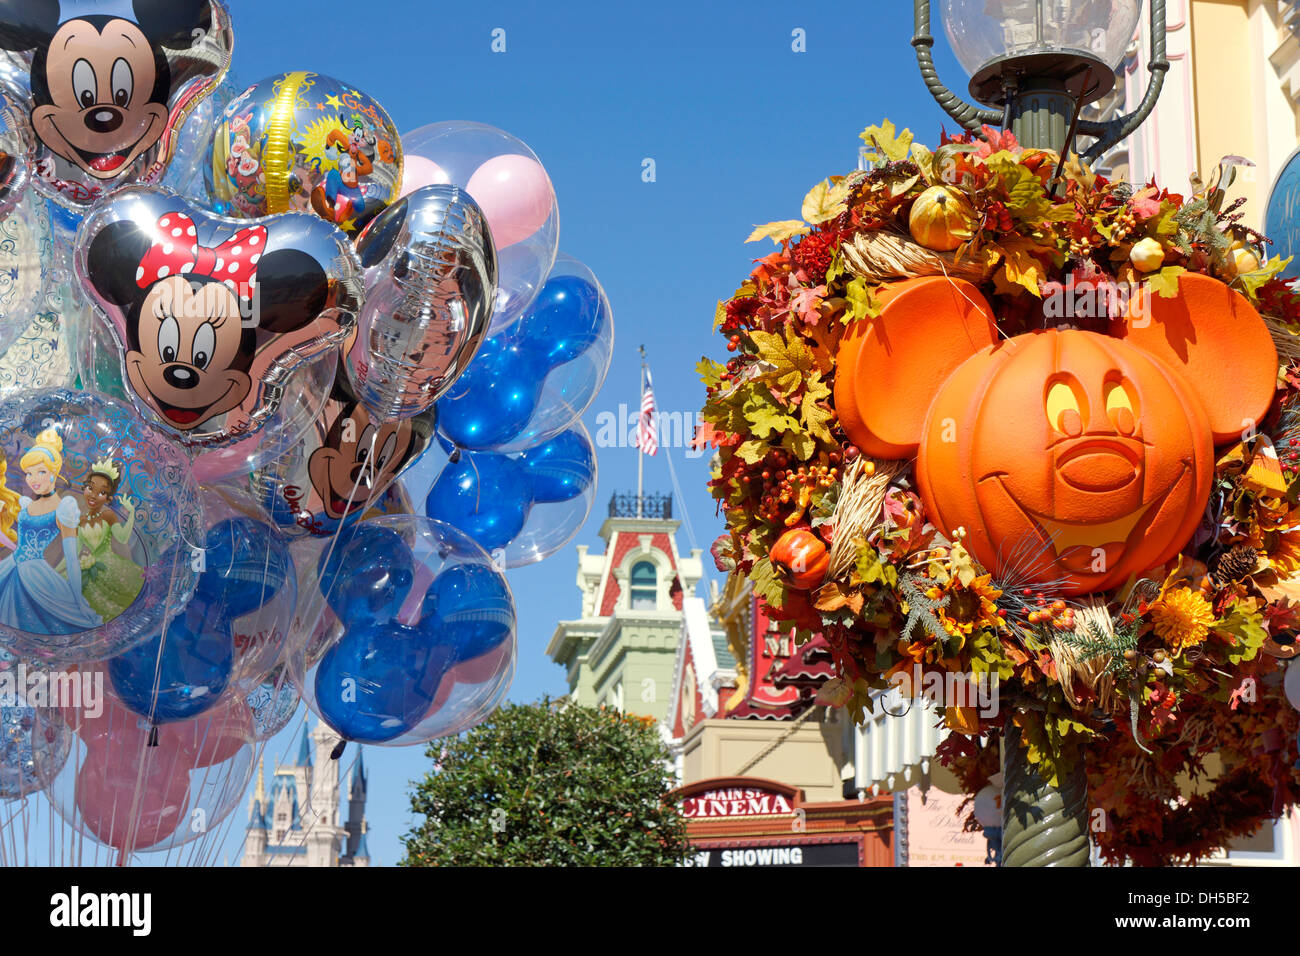 halloween at disney world resort balloons decorations pumpkin carved in shape of mickey mouse face orlando florida - Disney Halloween Orlando